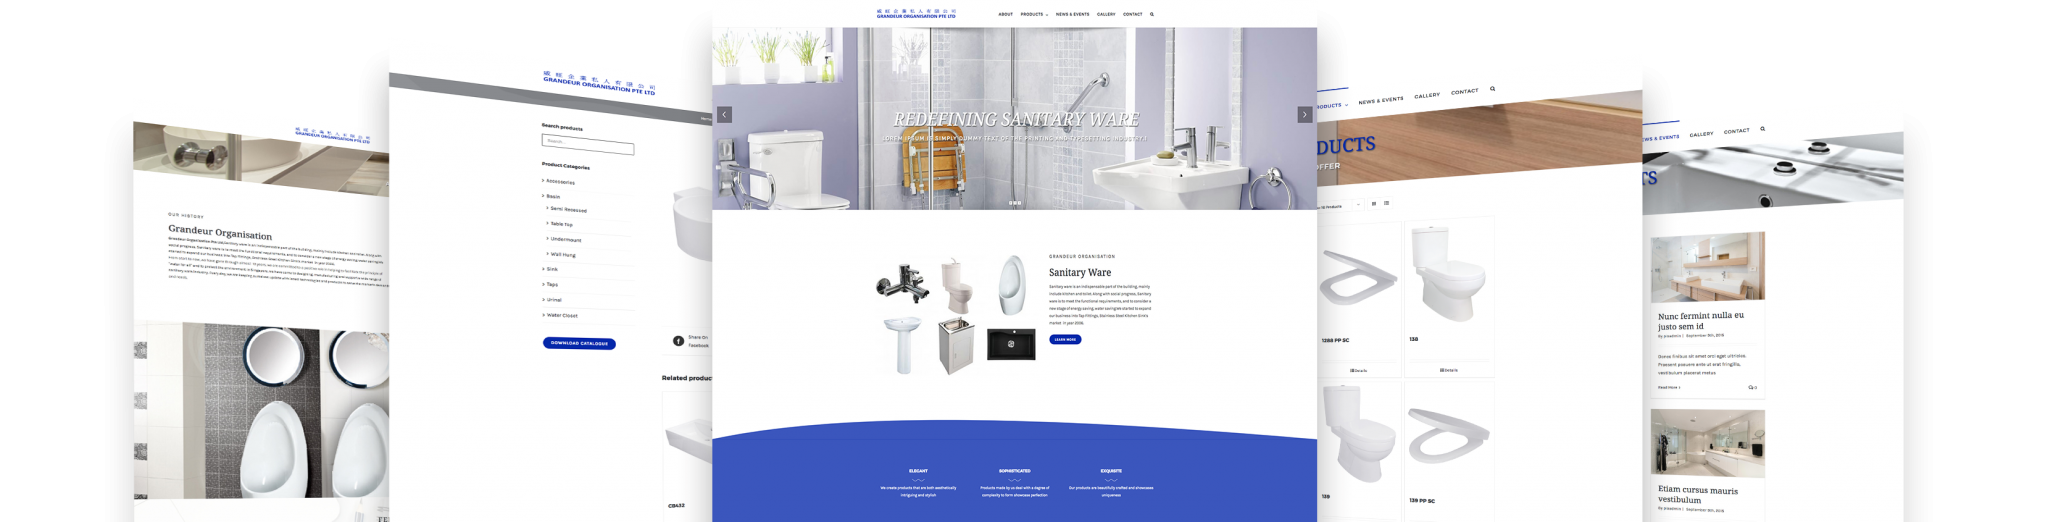 grandeur 5 display web design